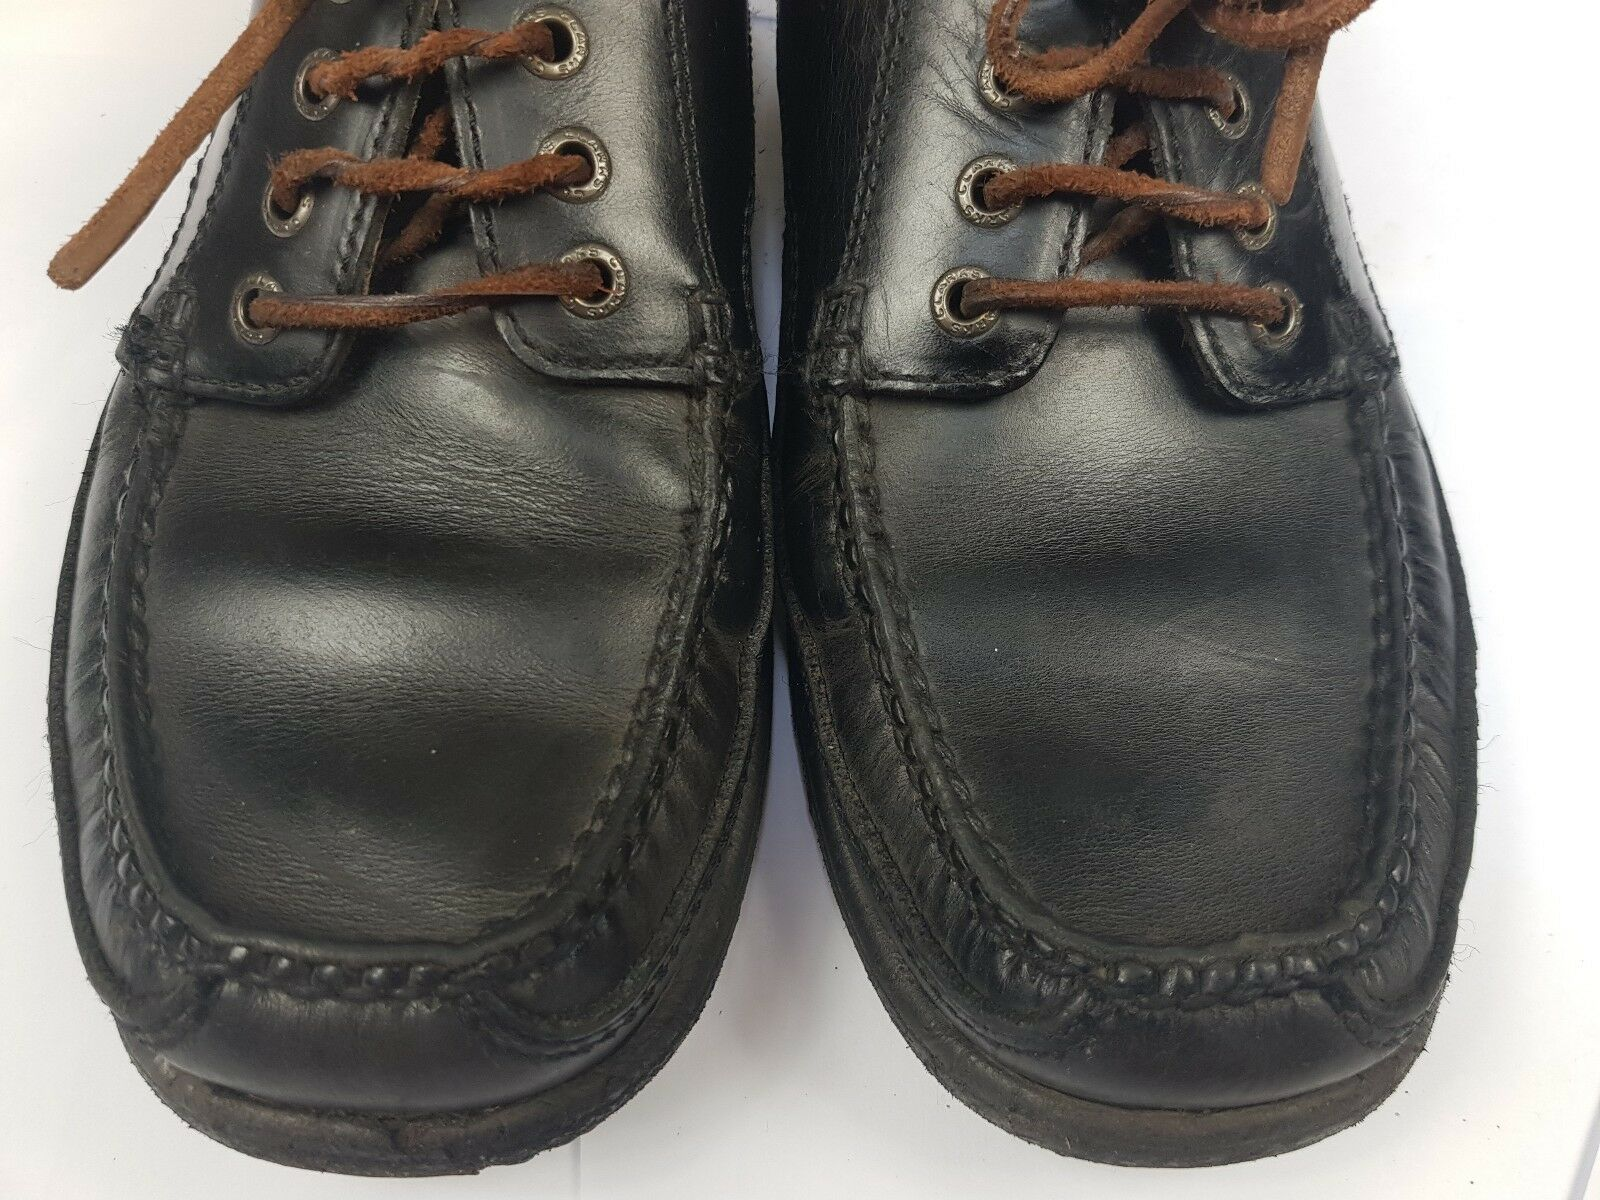 CLARKS Active Air BOAT SHOE Blue Boat G Deck Shoes Leather Uppers G Boat - VGC 3fd901